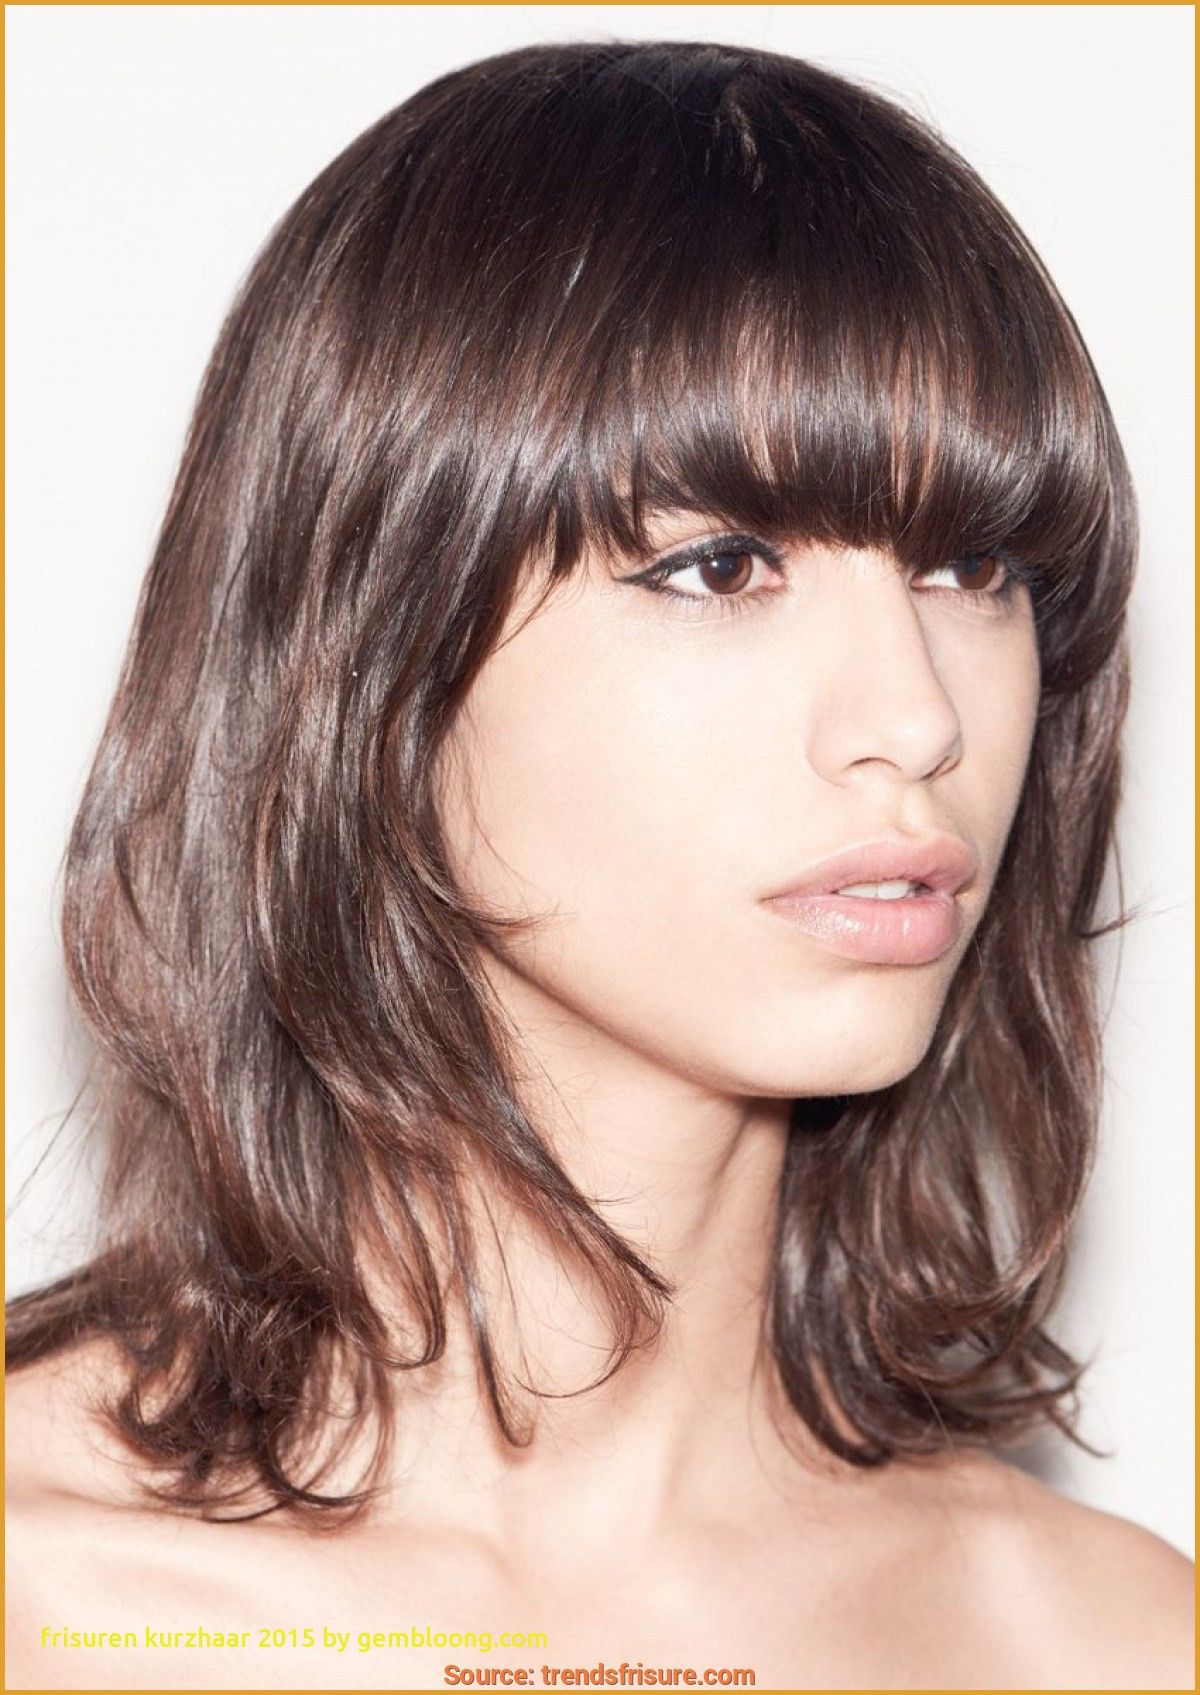 Frisuren Kurzhaar 2015 Inspirational Fresh Frisuren Bob Kurz Stufig